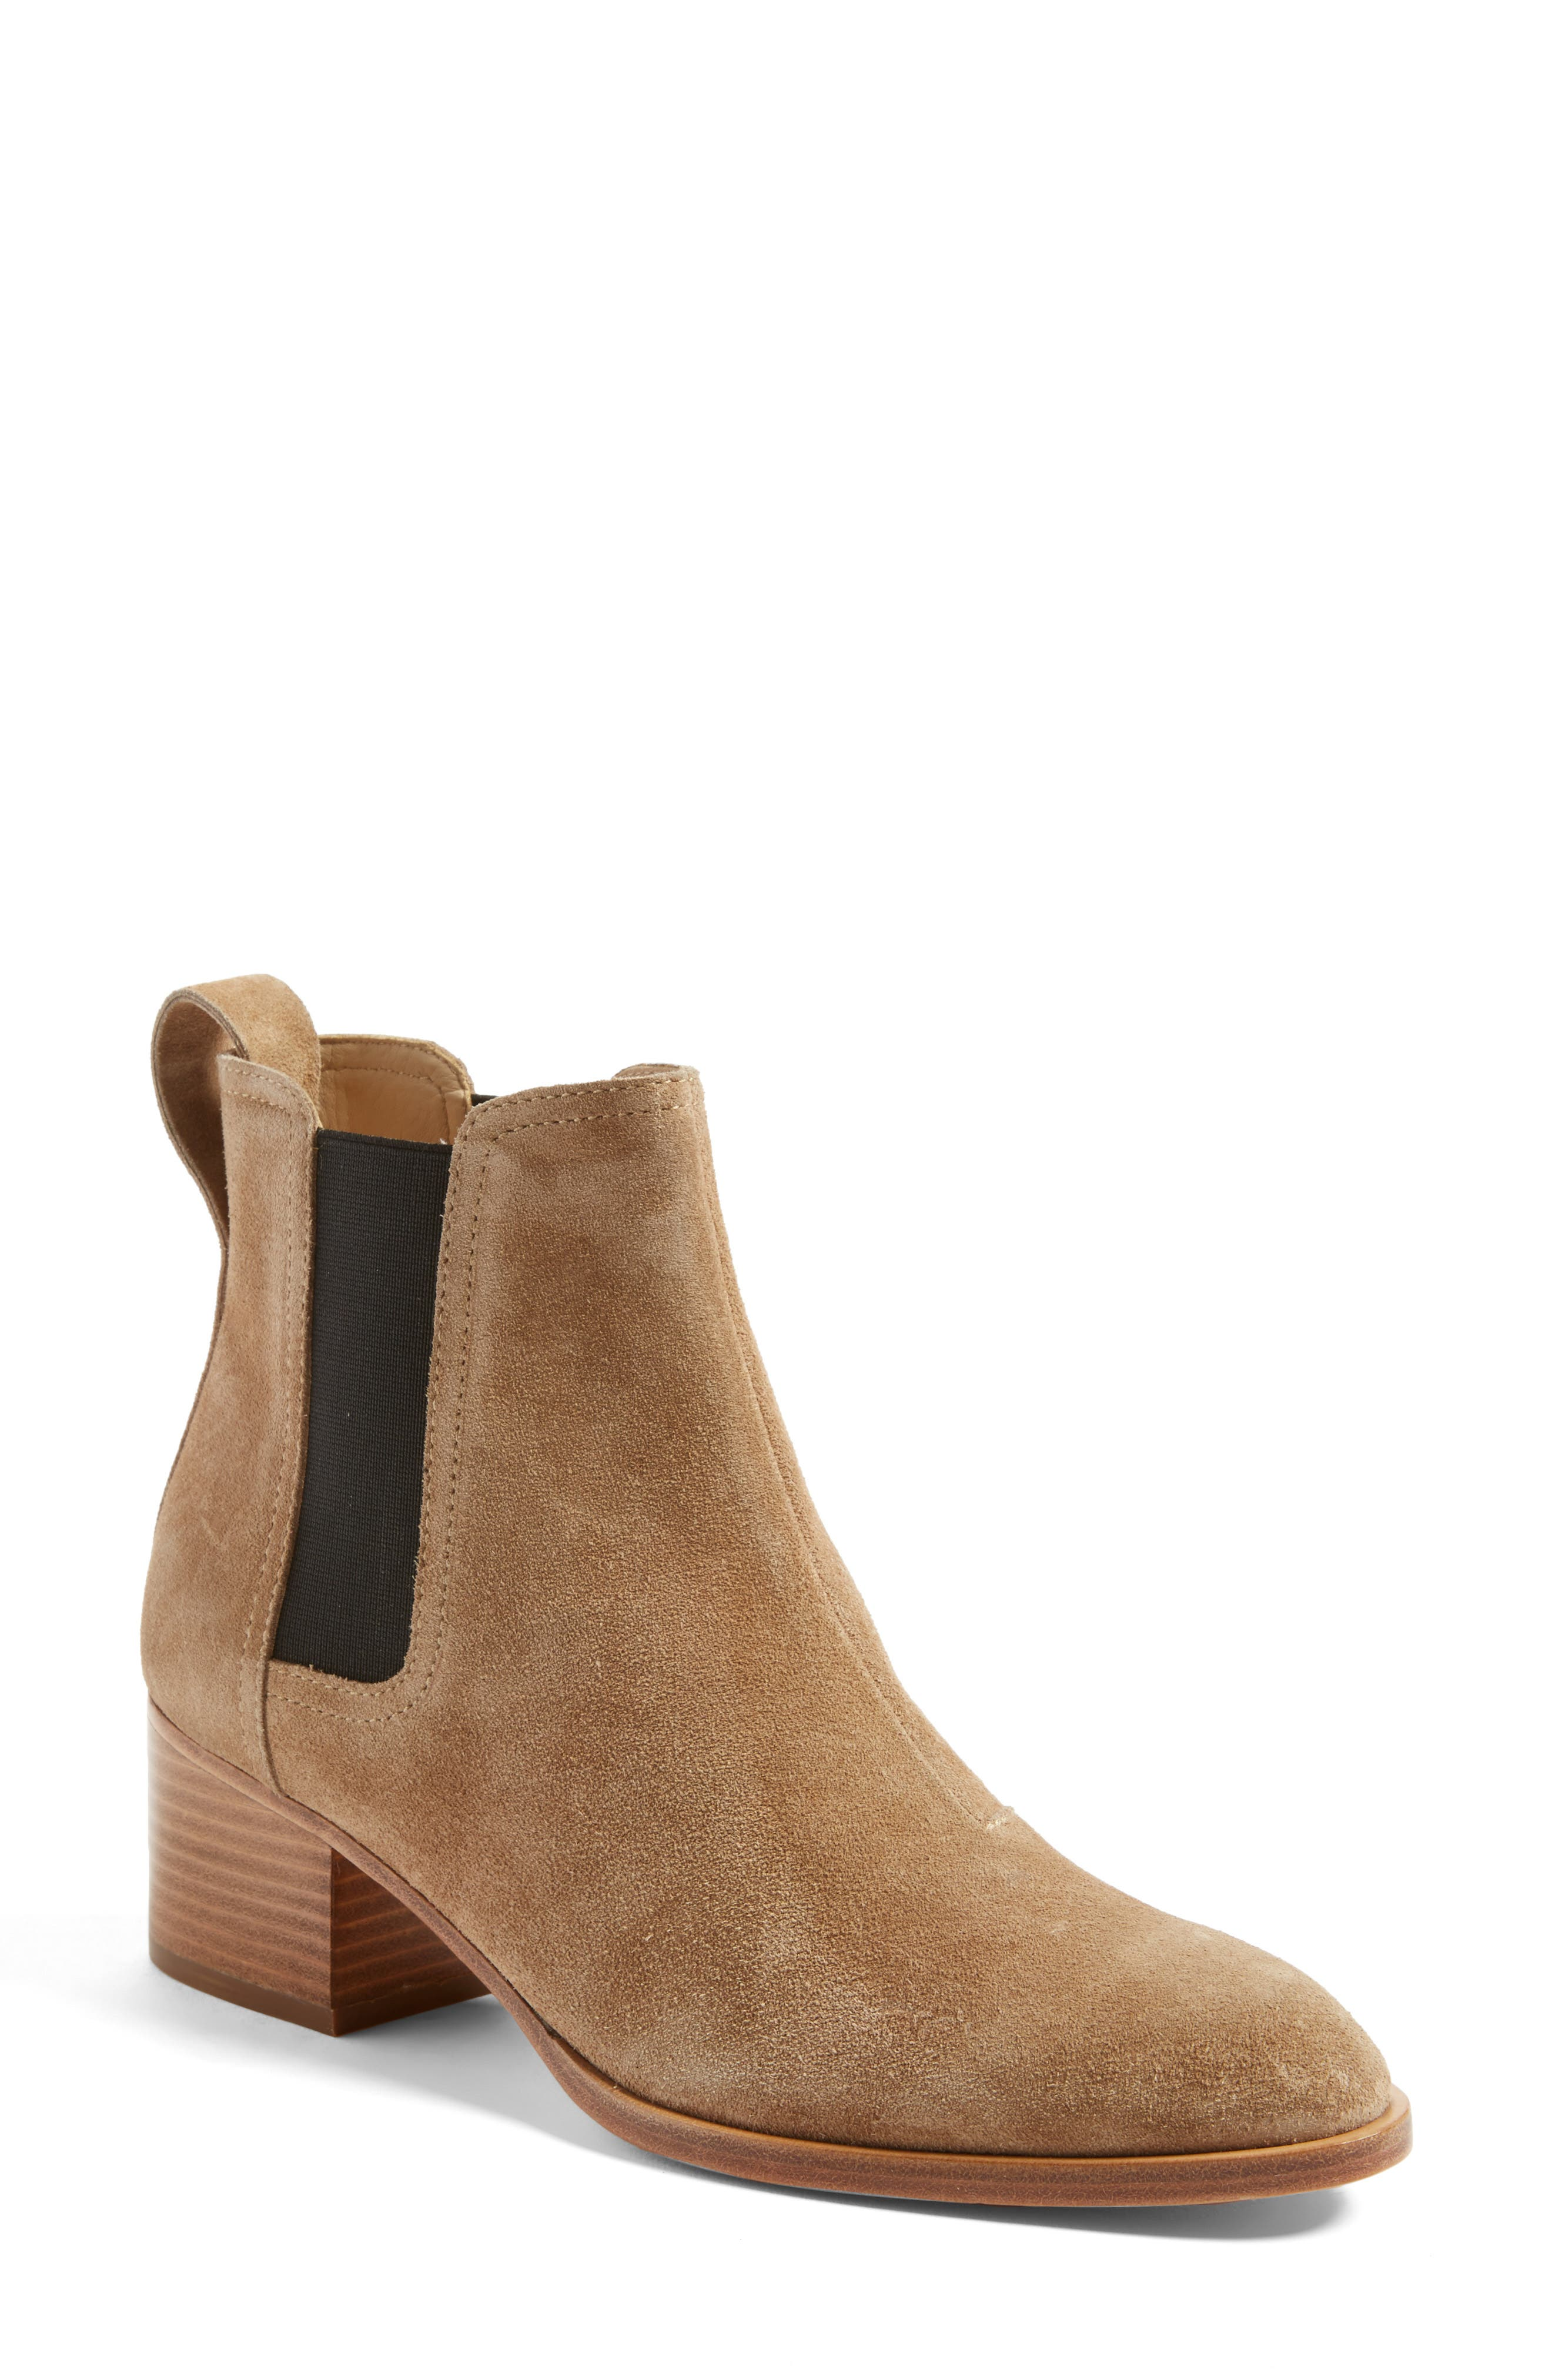 RAG & BONE, 'Walker' Bootie, Main thumbnail 1, color, CAMEL SUEDE